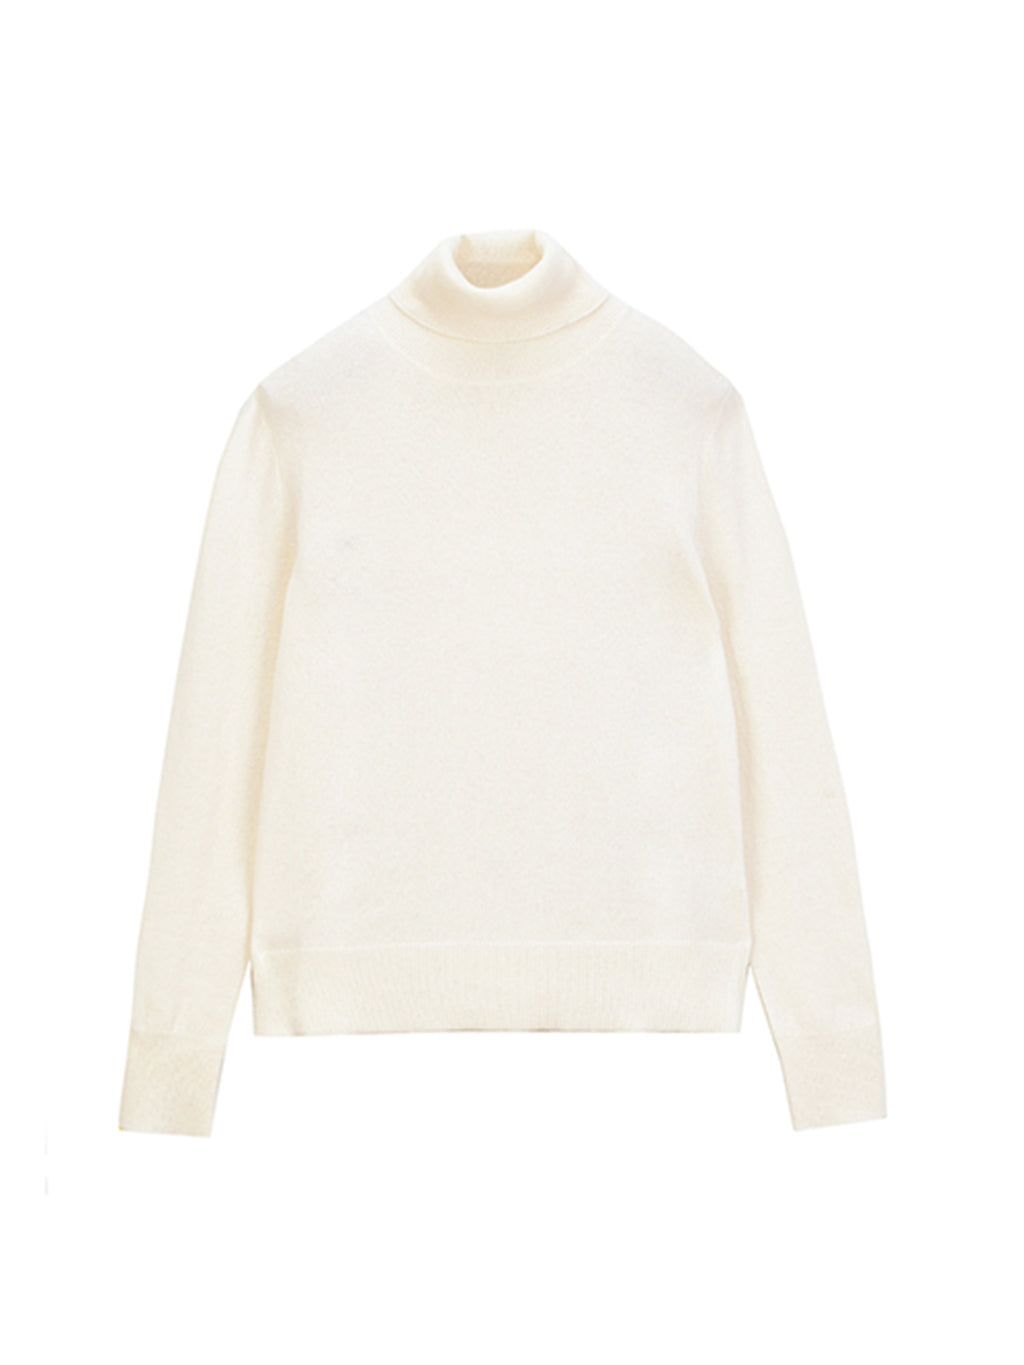 Turtleneck Sweater_Vintage White